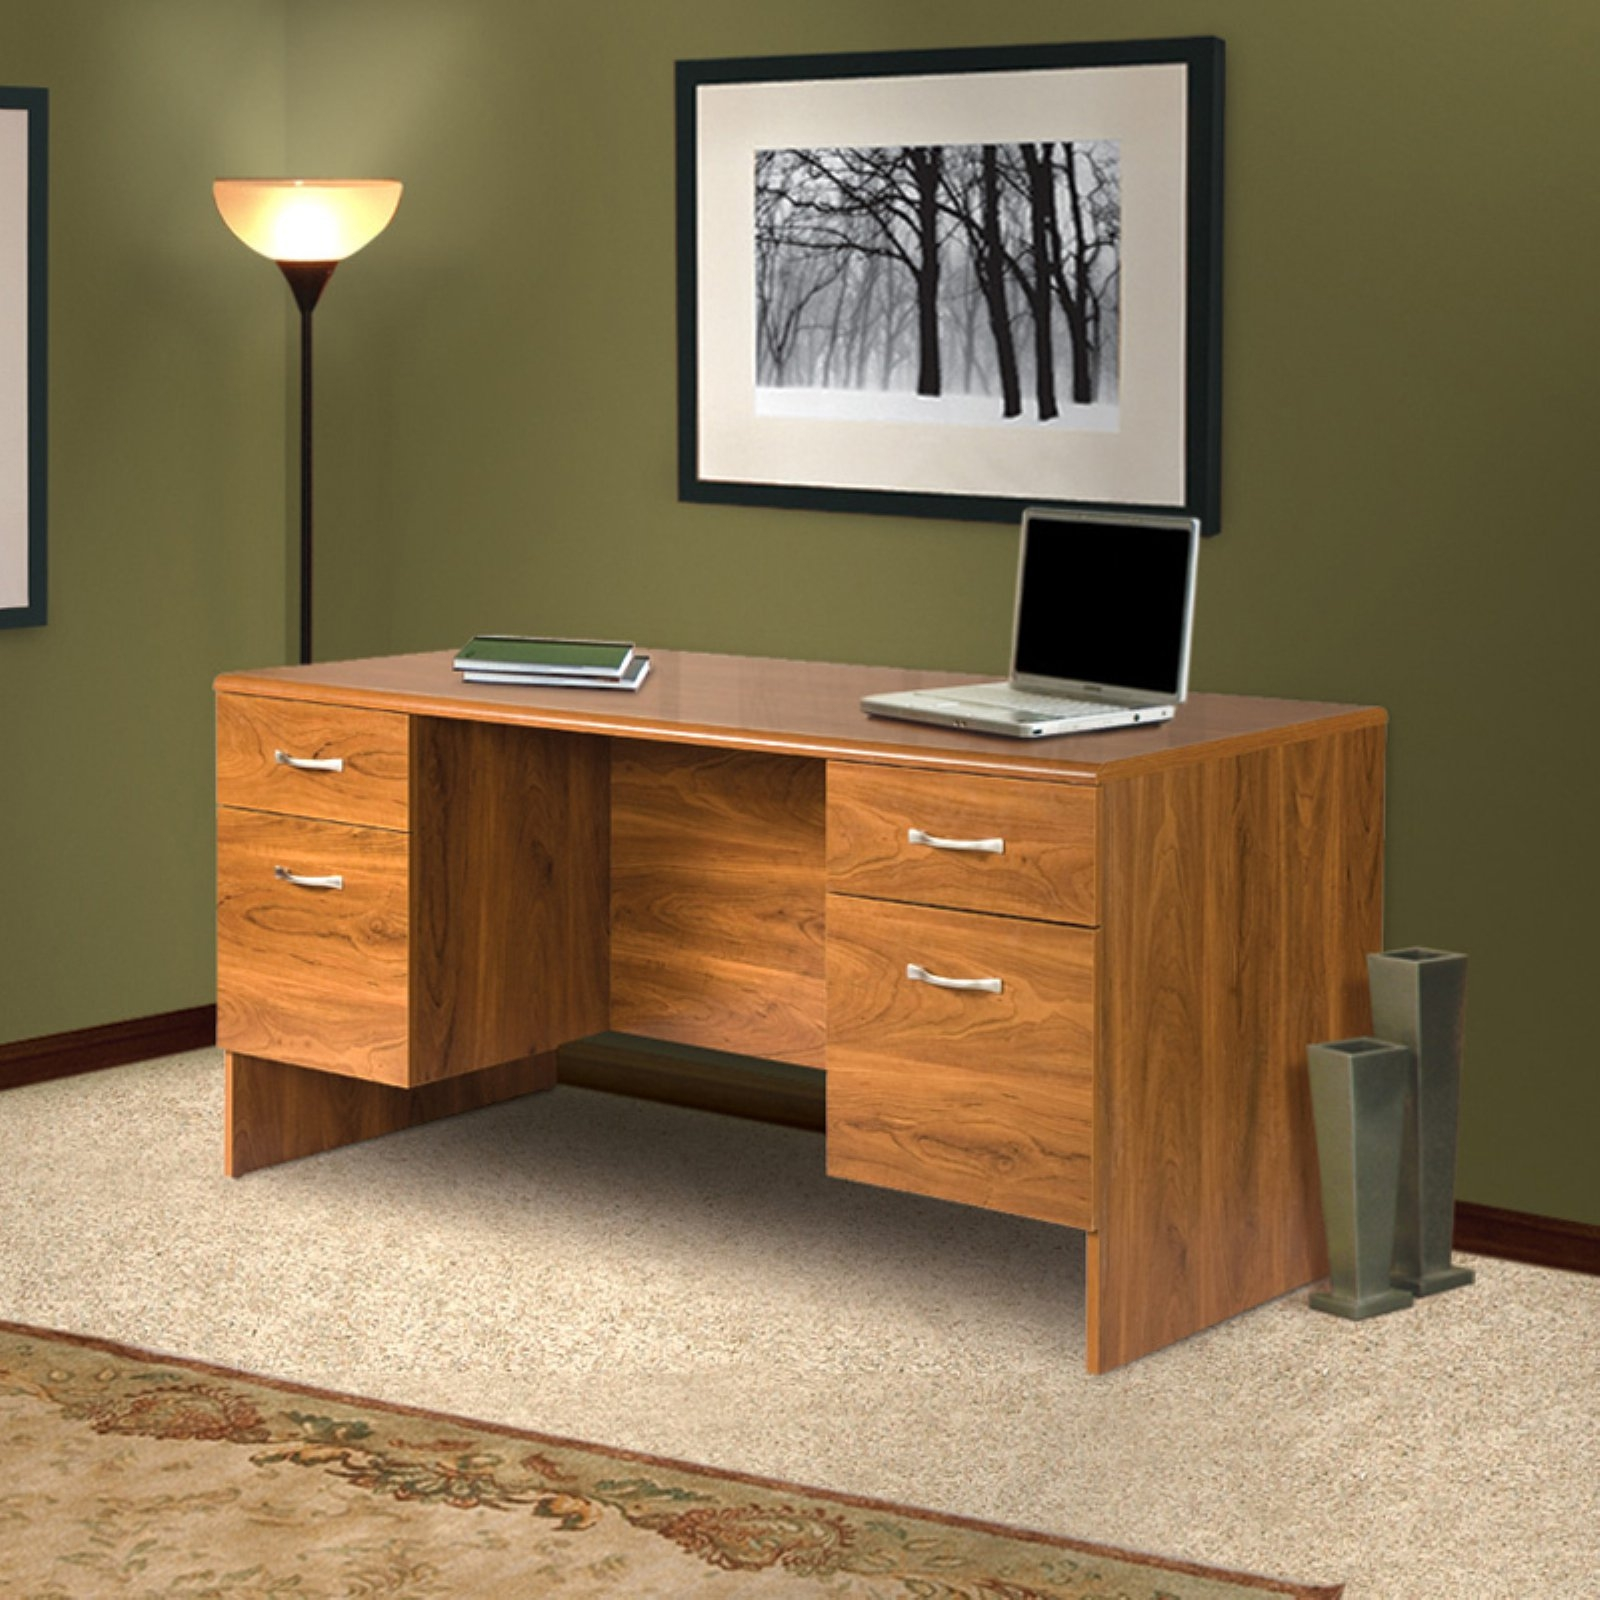 Office Adaptations Executive Desk with Double Pedestal